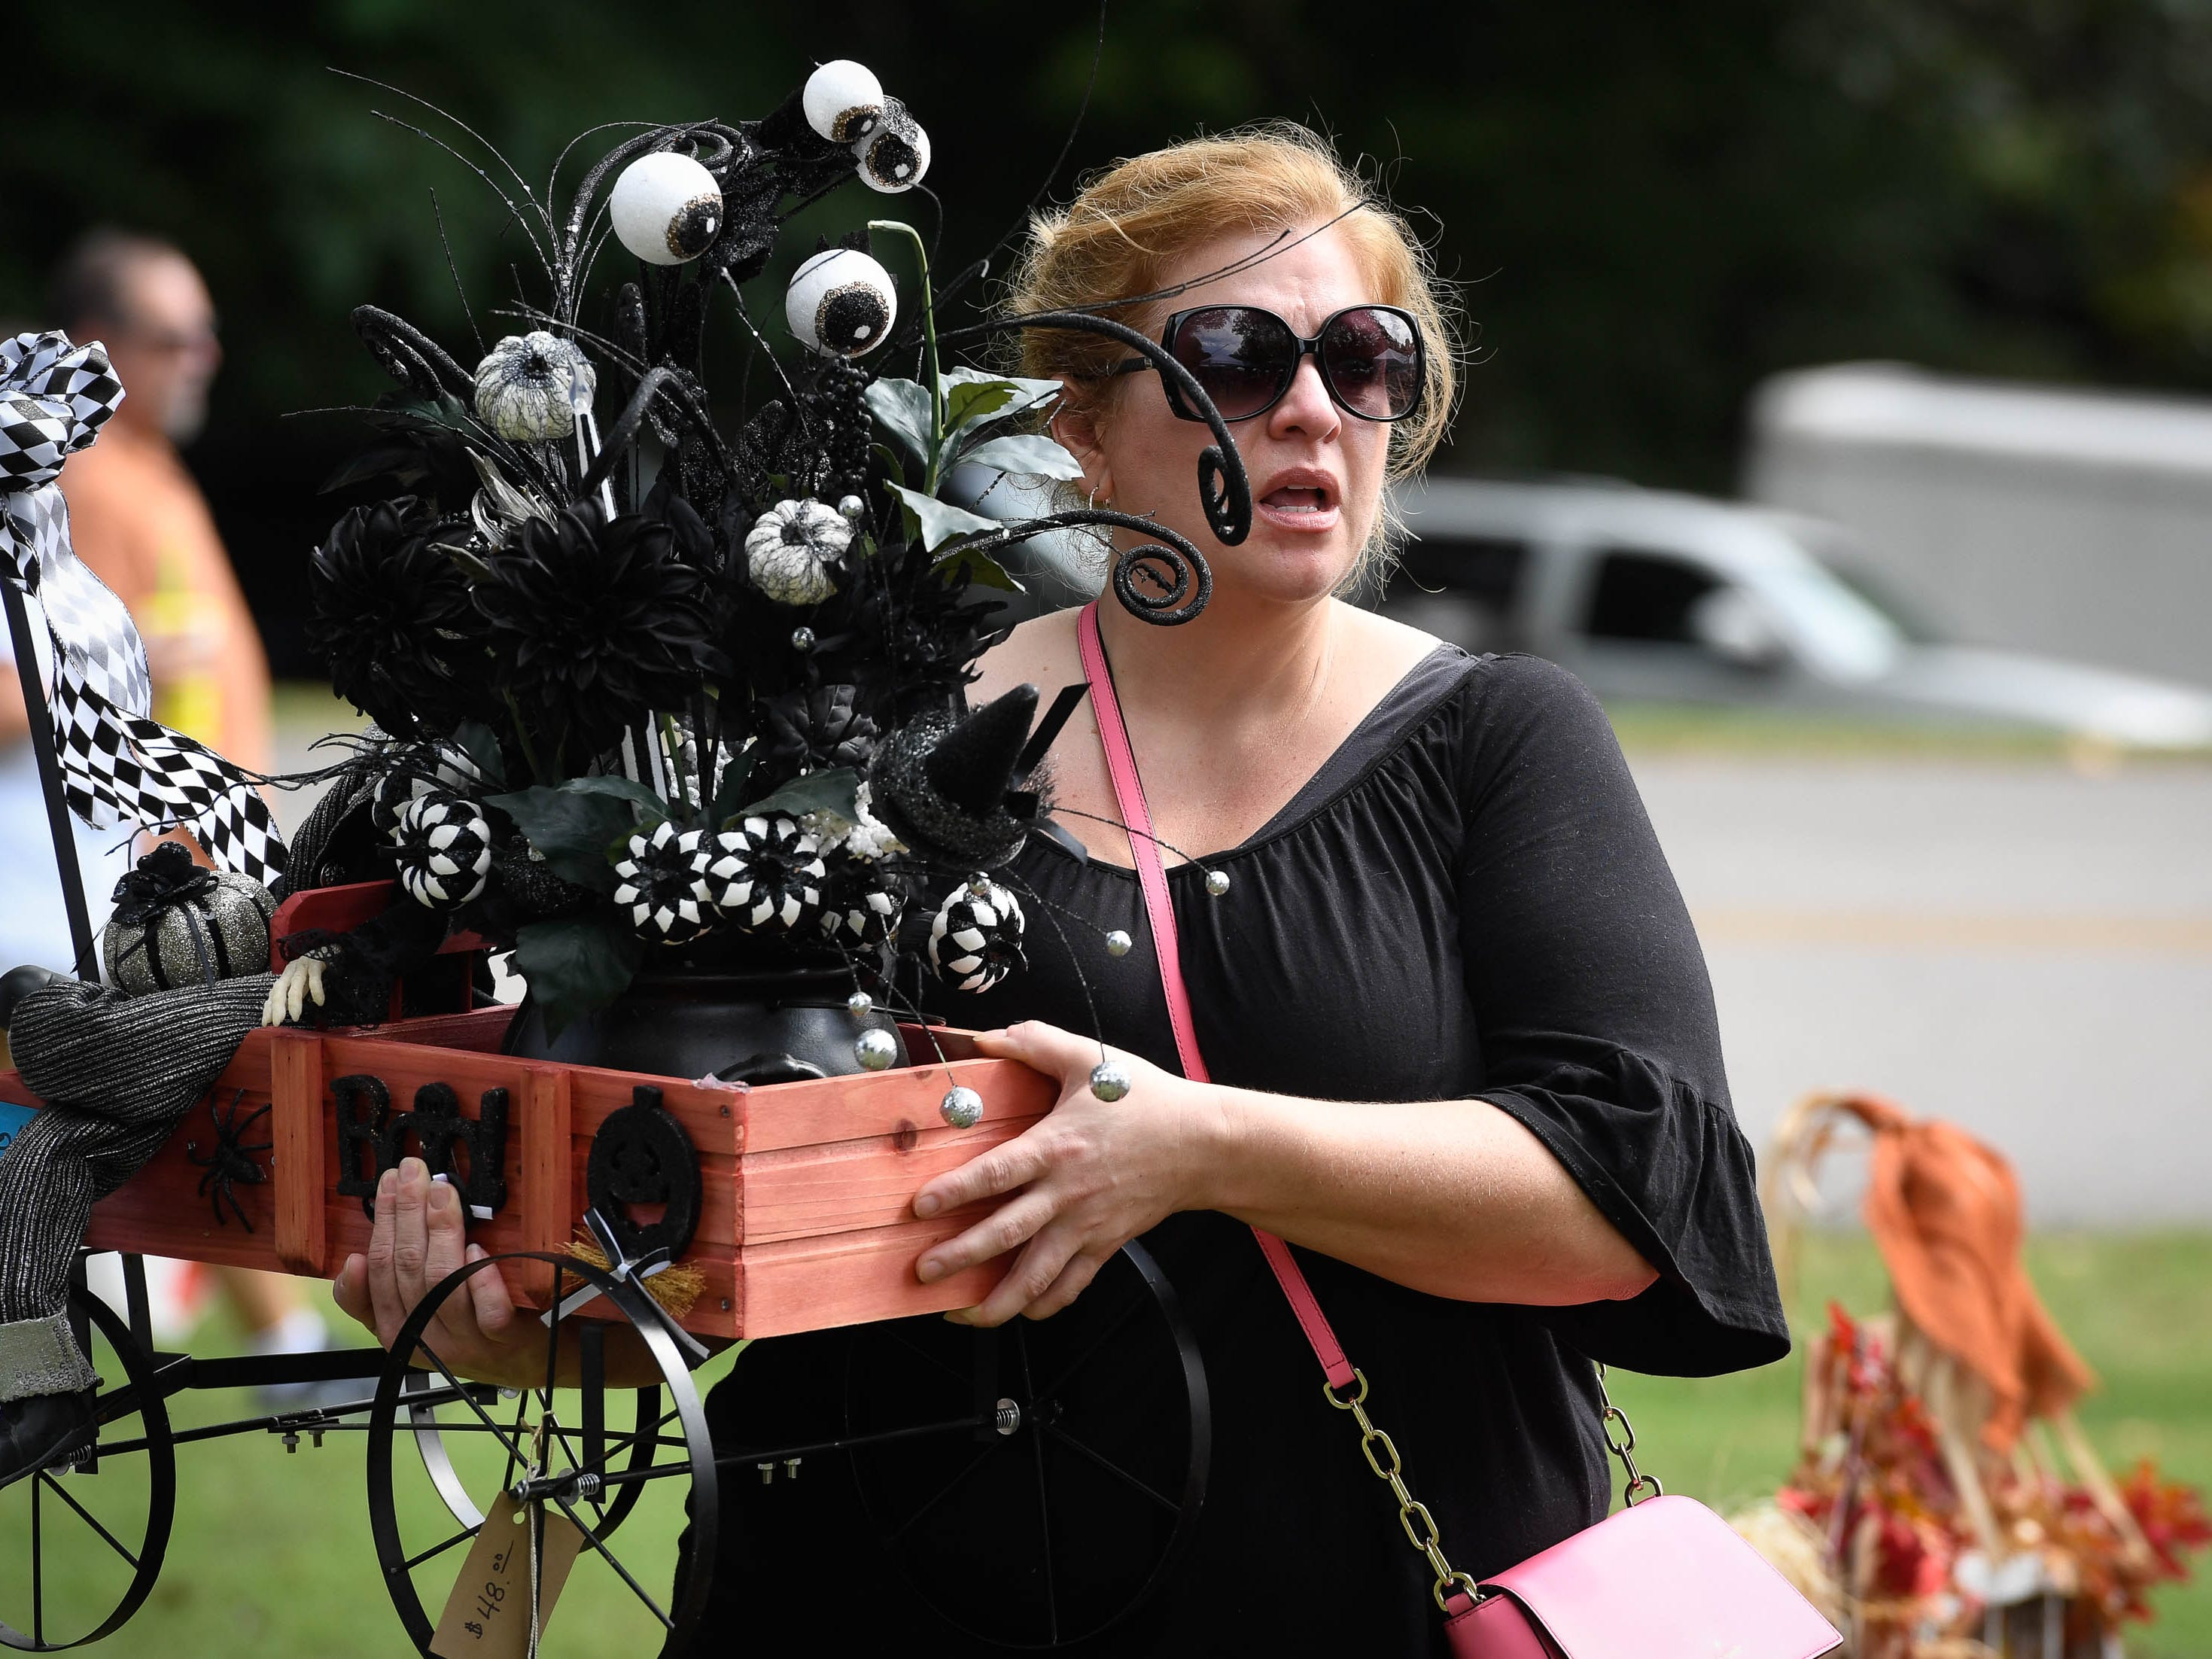 Carrying a Halloween themed center piece, Rachel Hale, Sebree, Ky., looks for more bargains at the Henderson Lions Arts and Crafts festival held at Audubon State Park Saturday. The event, with nearly 100 vendors selling everything from seasonal florals to iron work, continues Sunday 10 a.m. to 4 p.m. October 6, 2018.